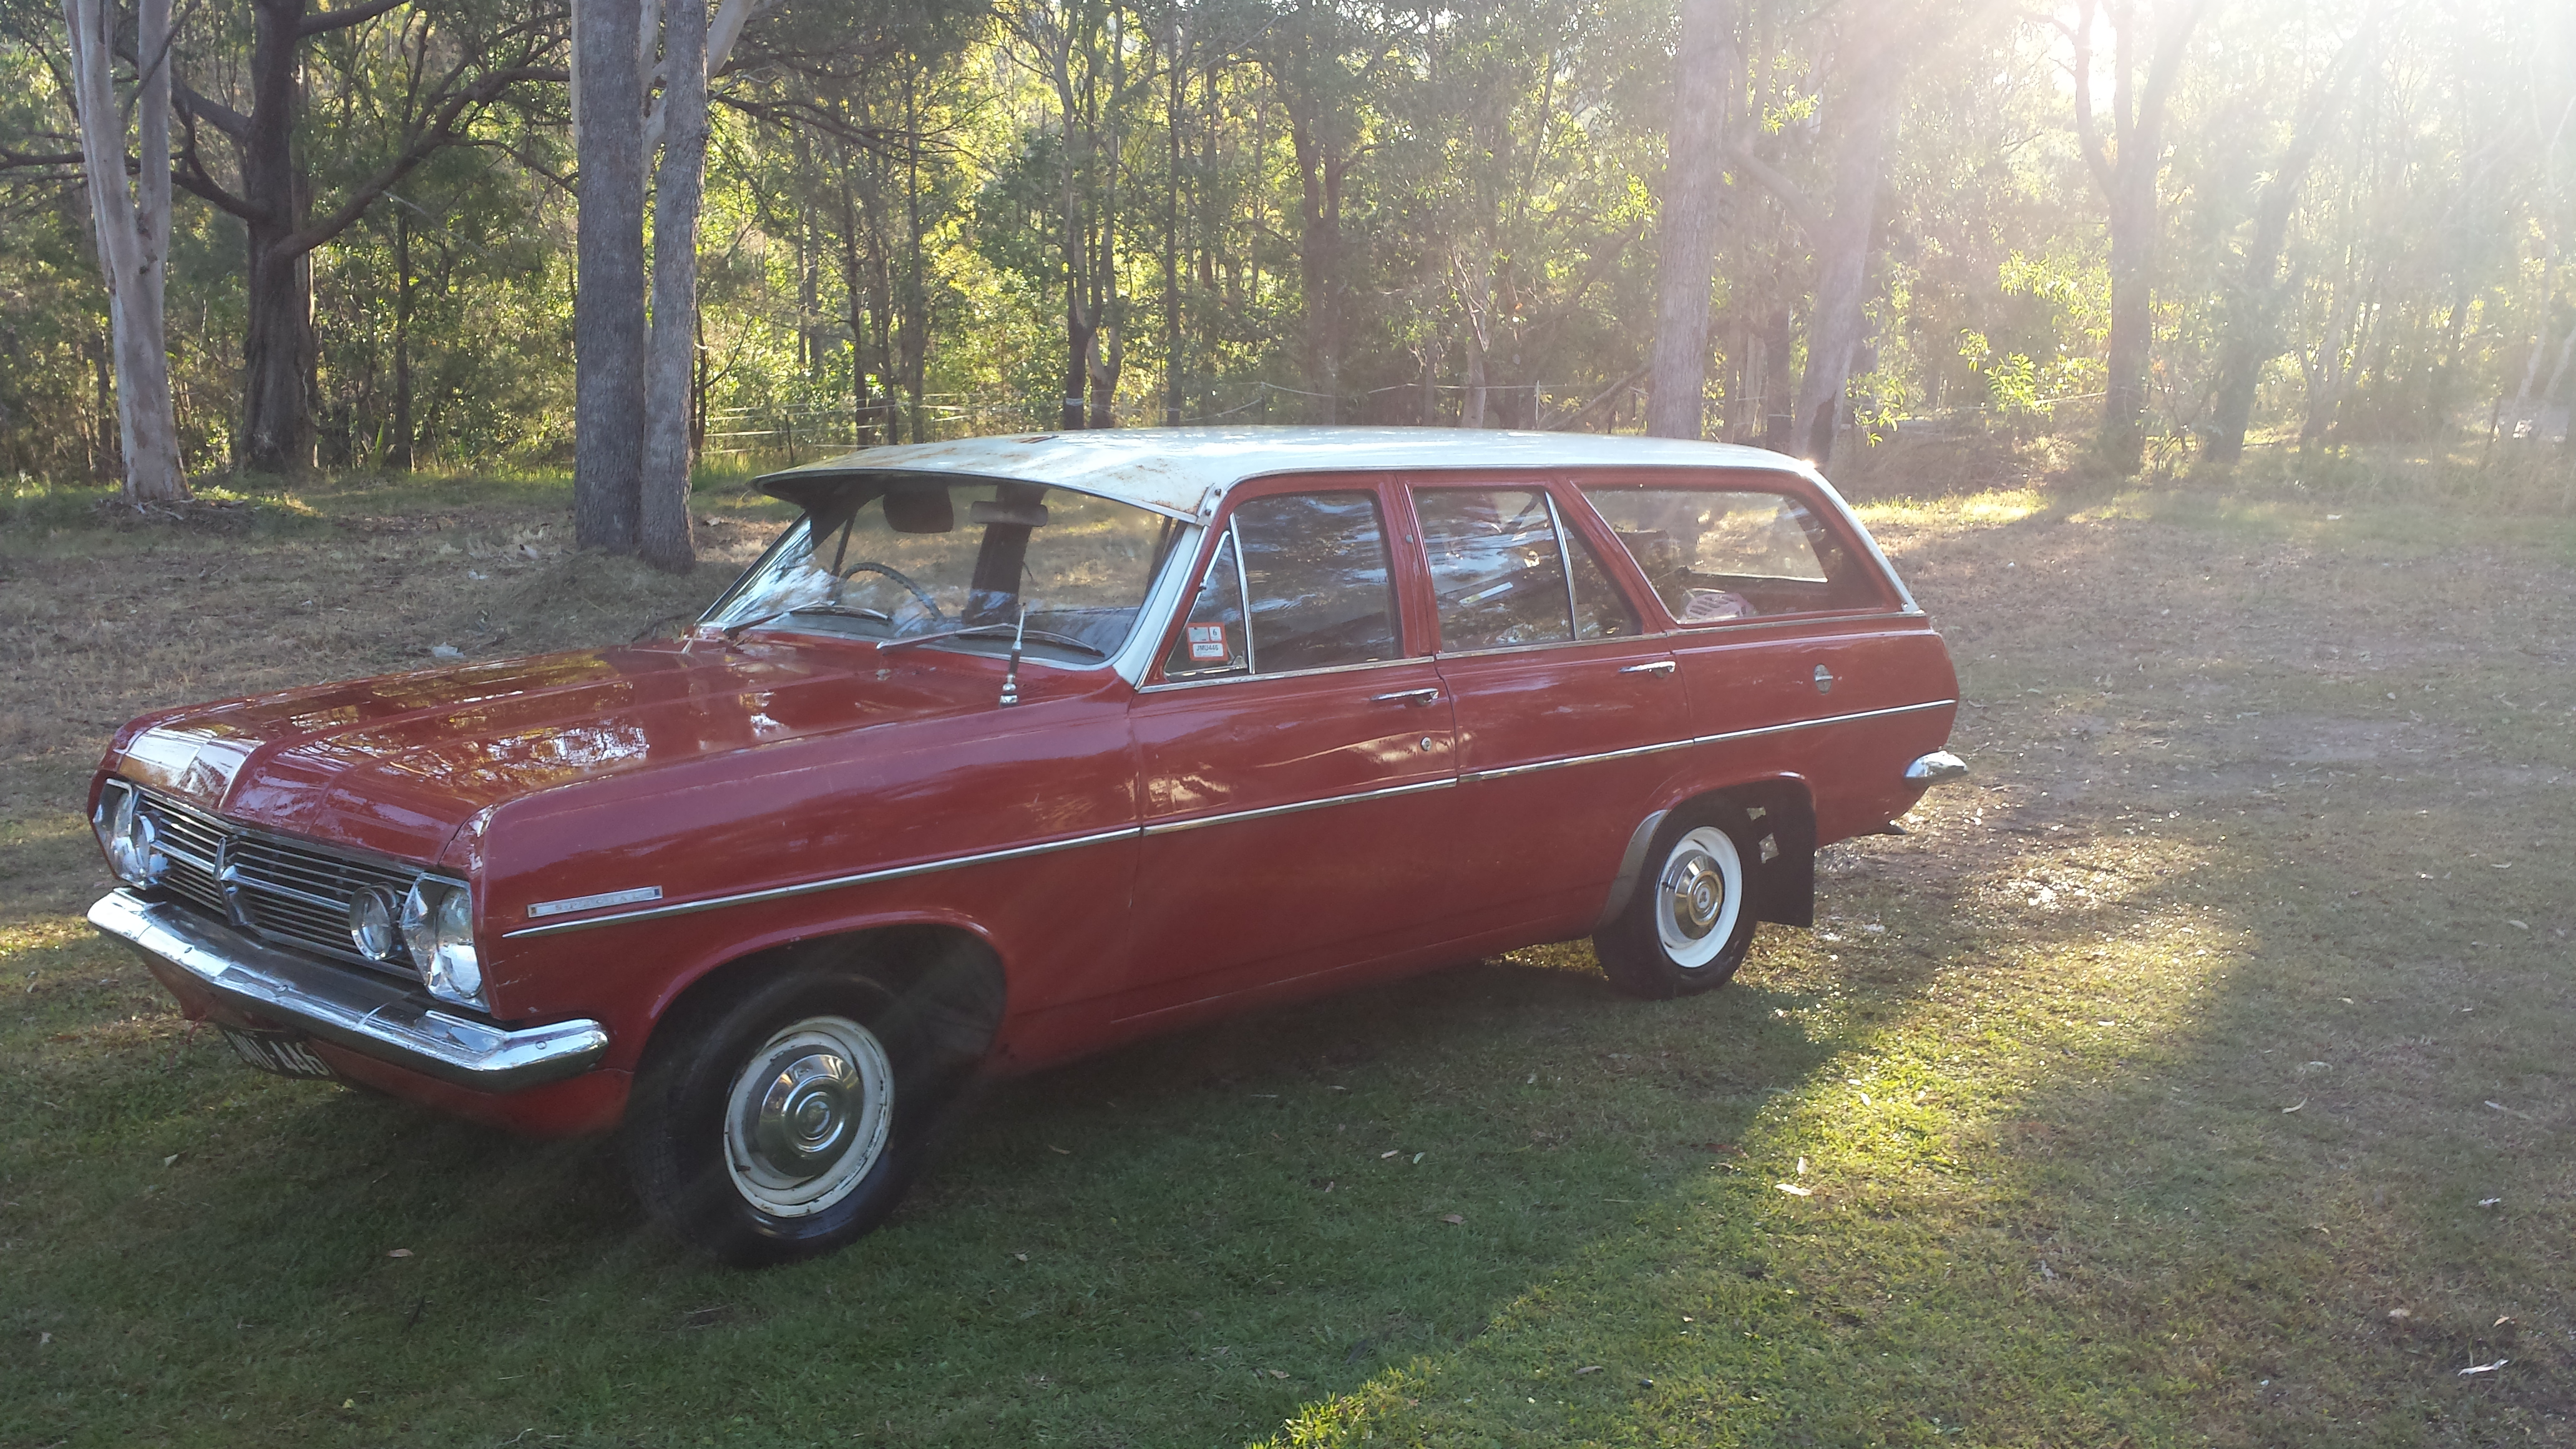 This is my 1966 hr holden special stationwagon would love to be able